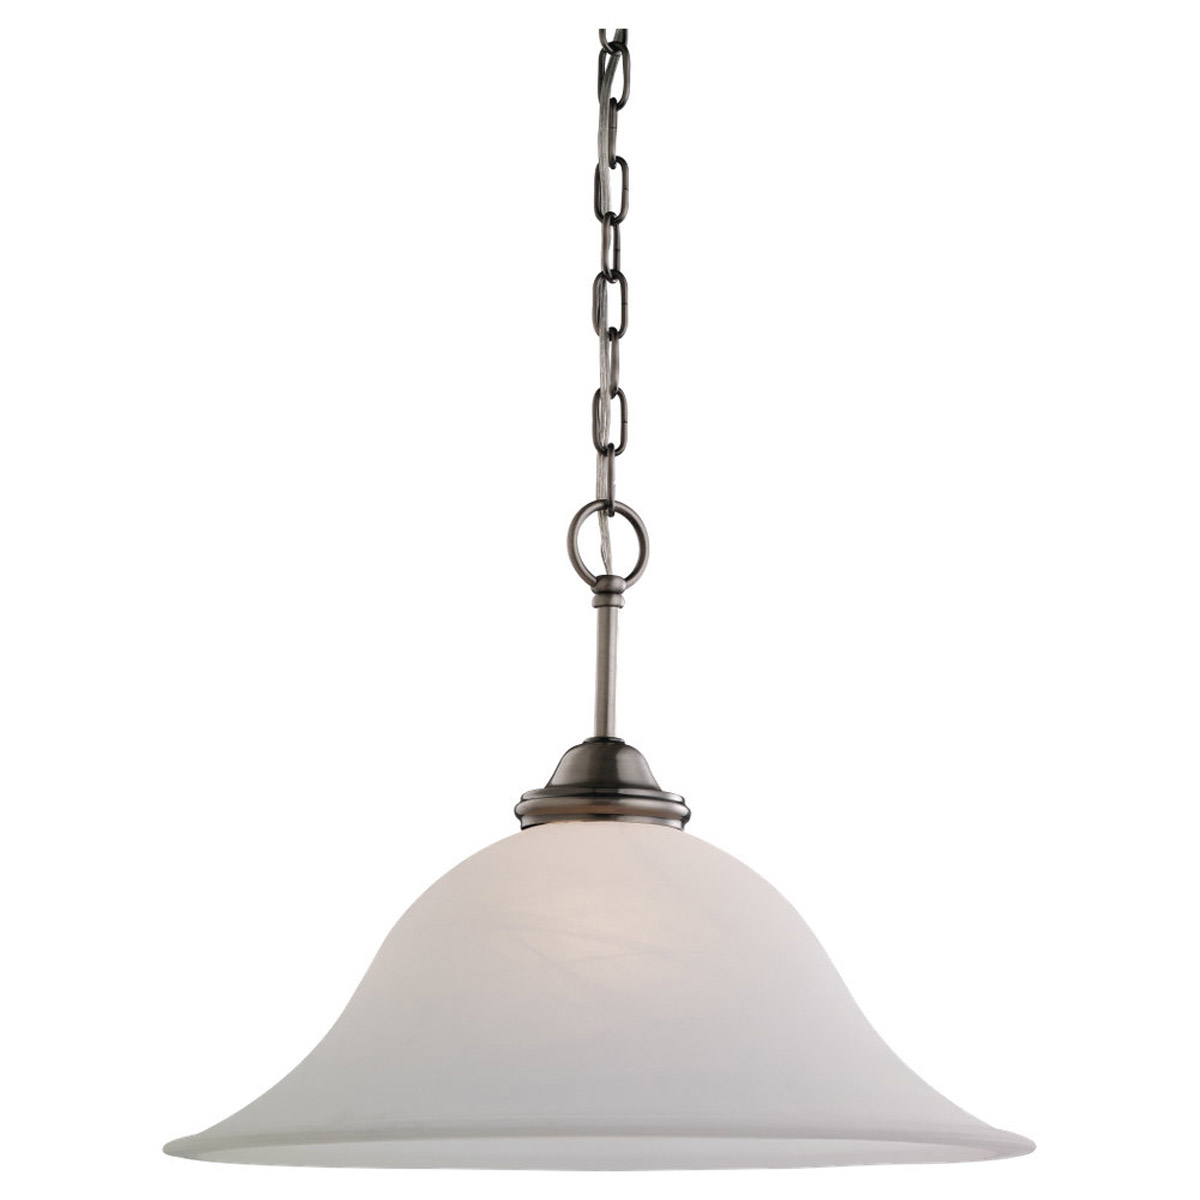 Sea Gull Lighting Rialto 1 Light Pendant in Antique Brushed Nickel 65360-965